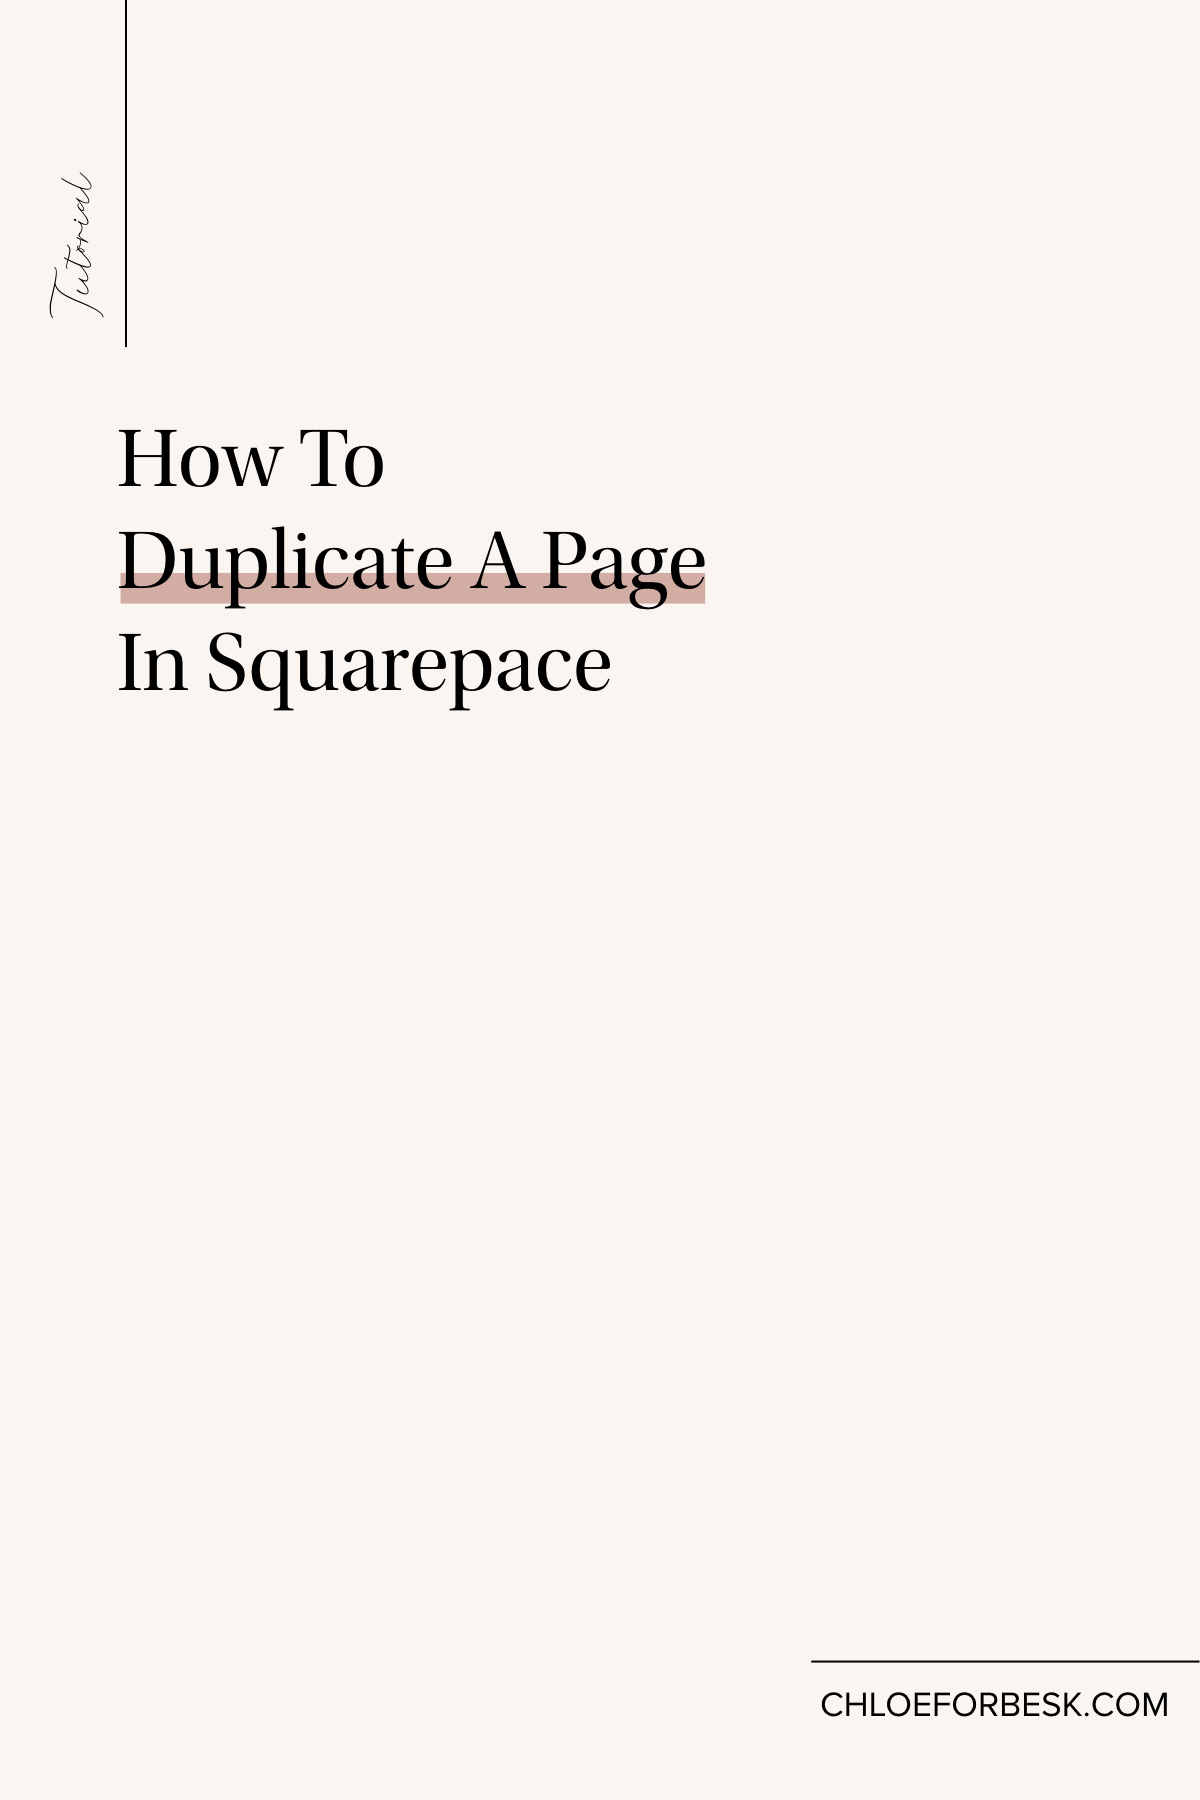 How To Duplicate A Page In Squarespace.002.jpeg